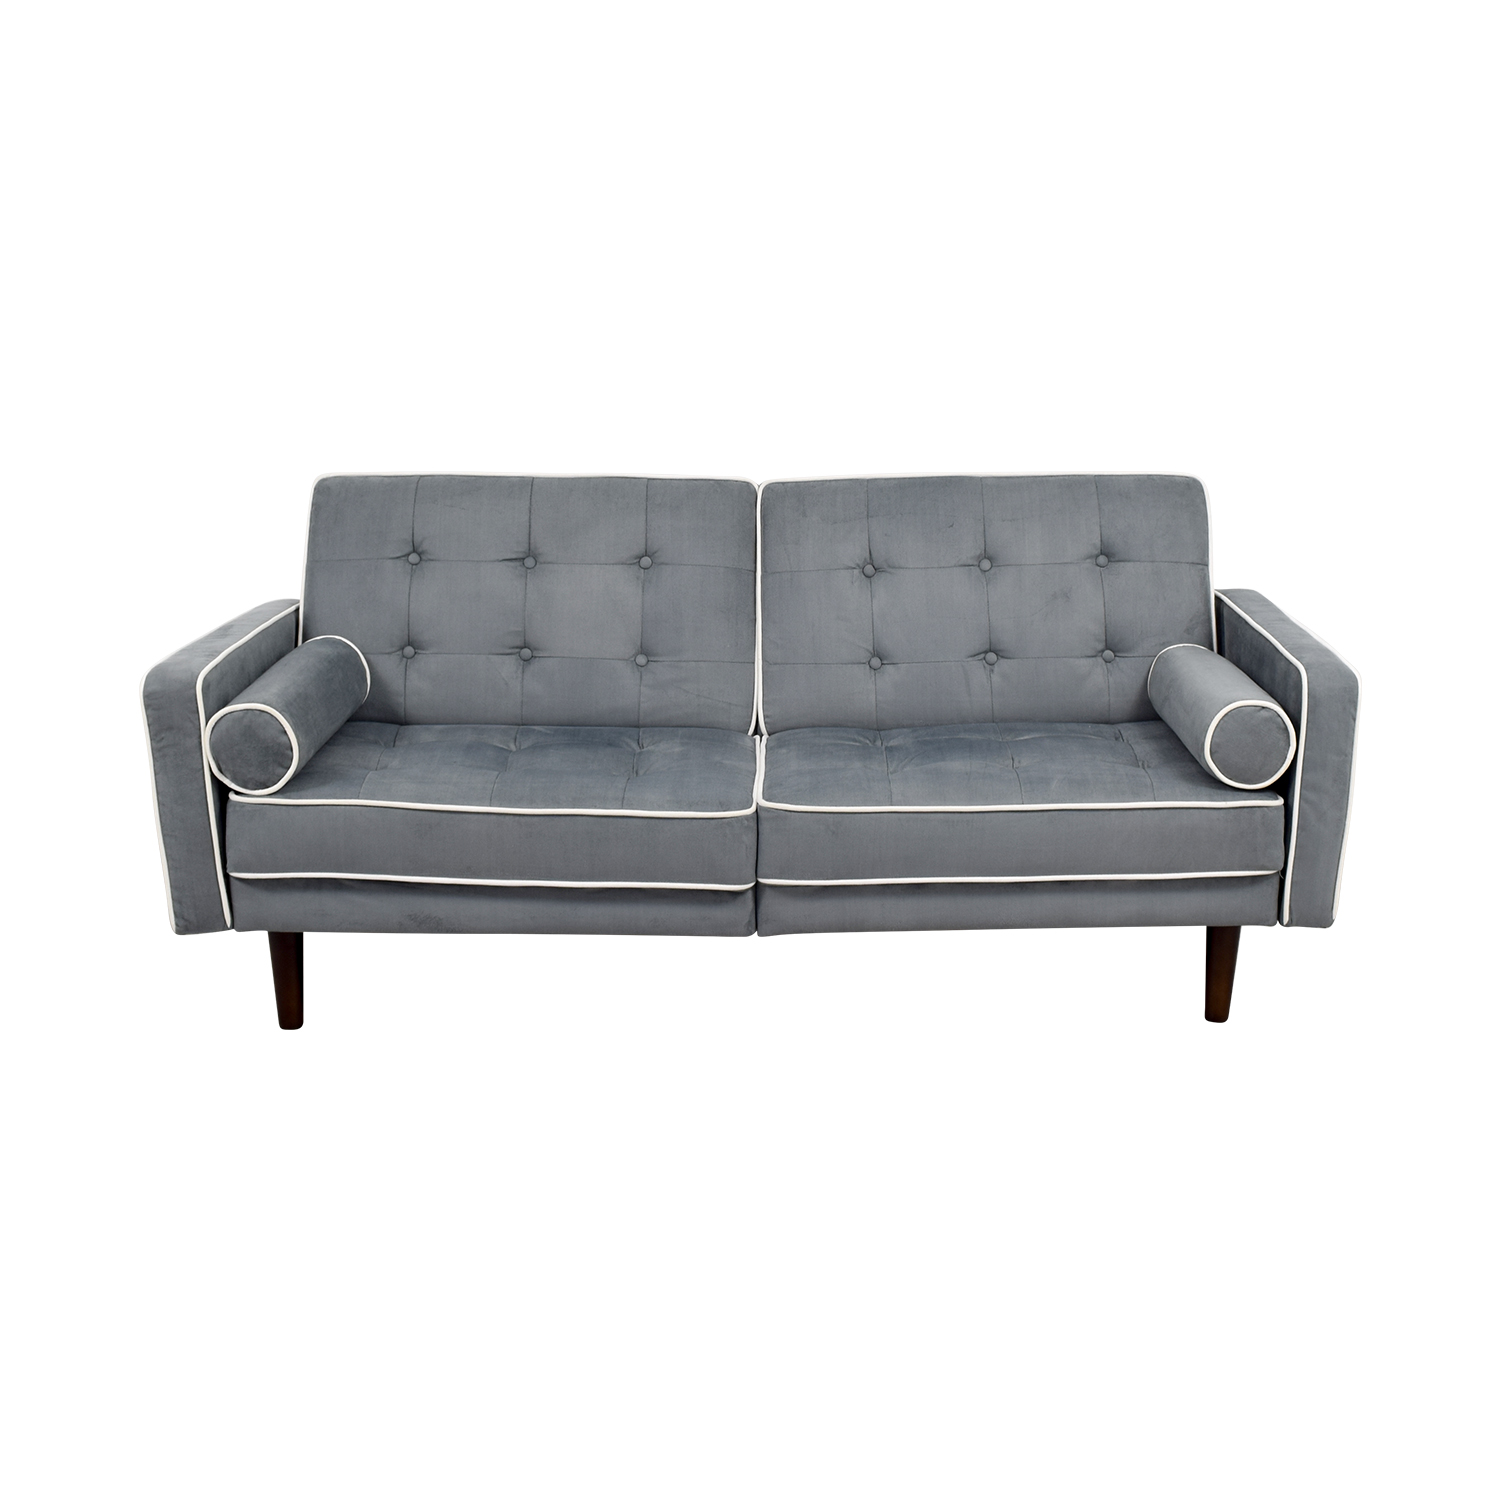 45 OFF Wayfair Wayfair Grey Tufted Sofa Bed Sofas